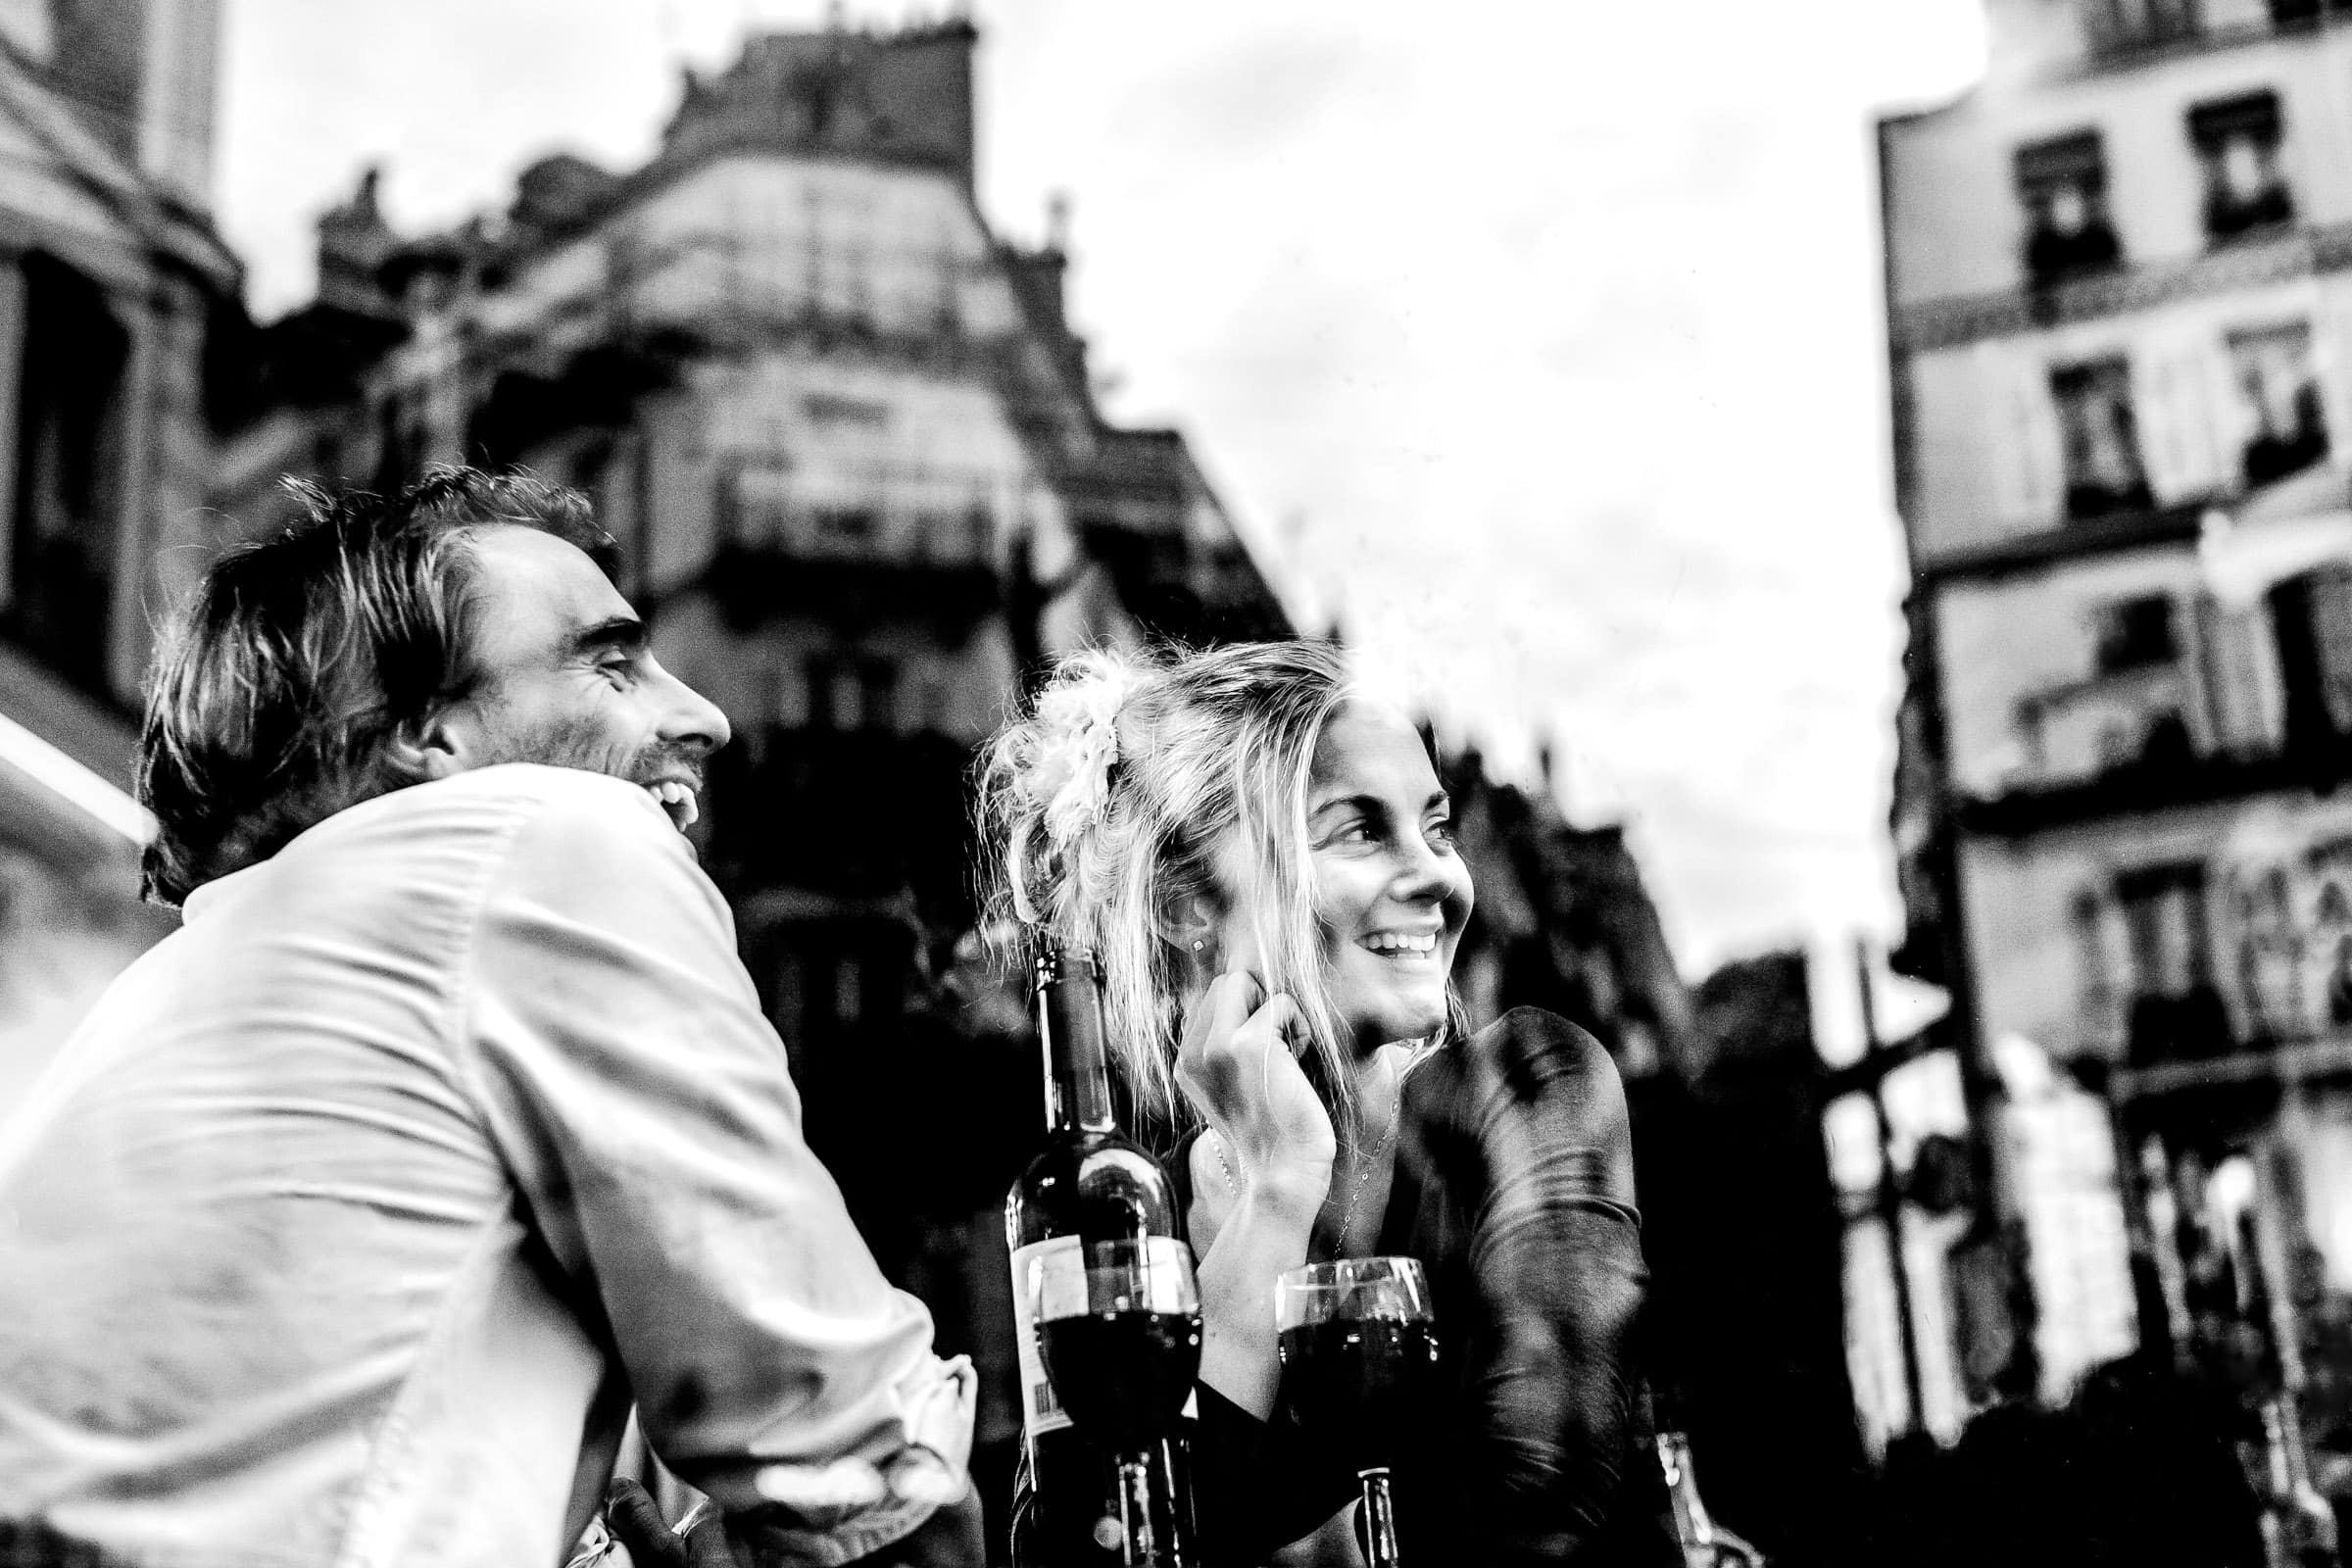 A peaceful moment of connection during Faye and David's Montmartre Paris Engagement date at Vins & Liqueurs with wine while looking out the window through reflections